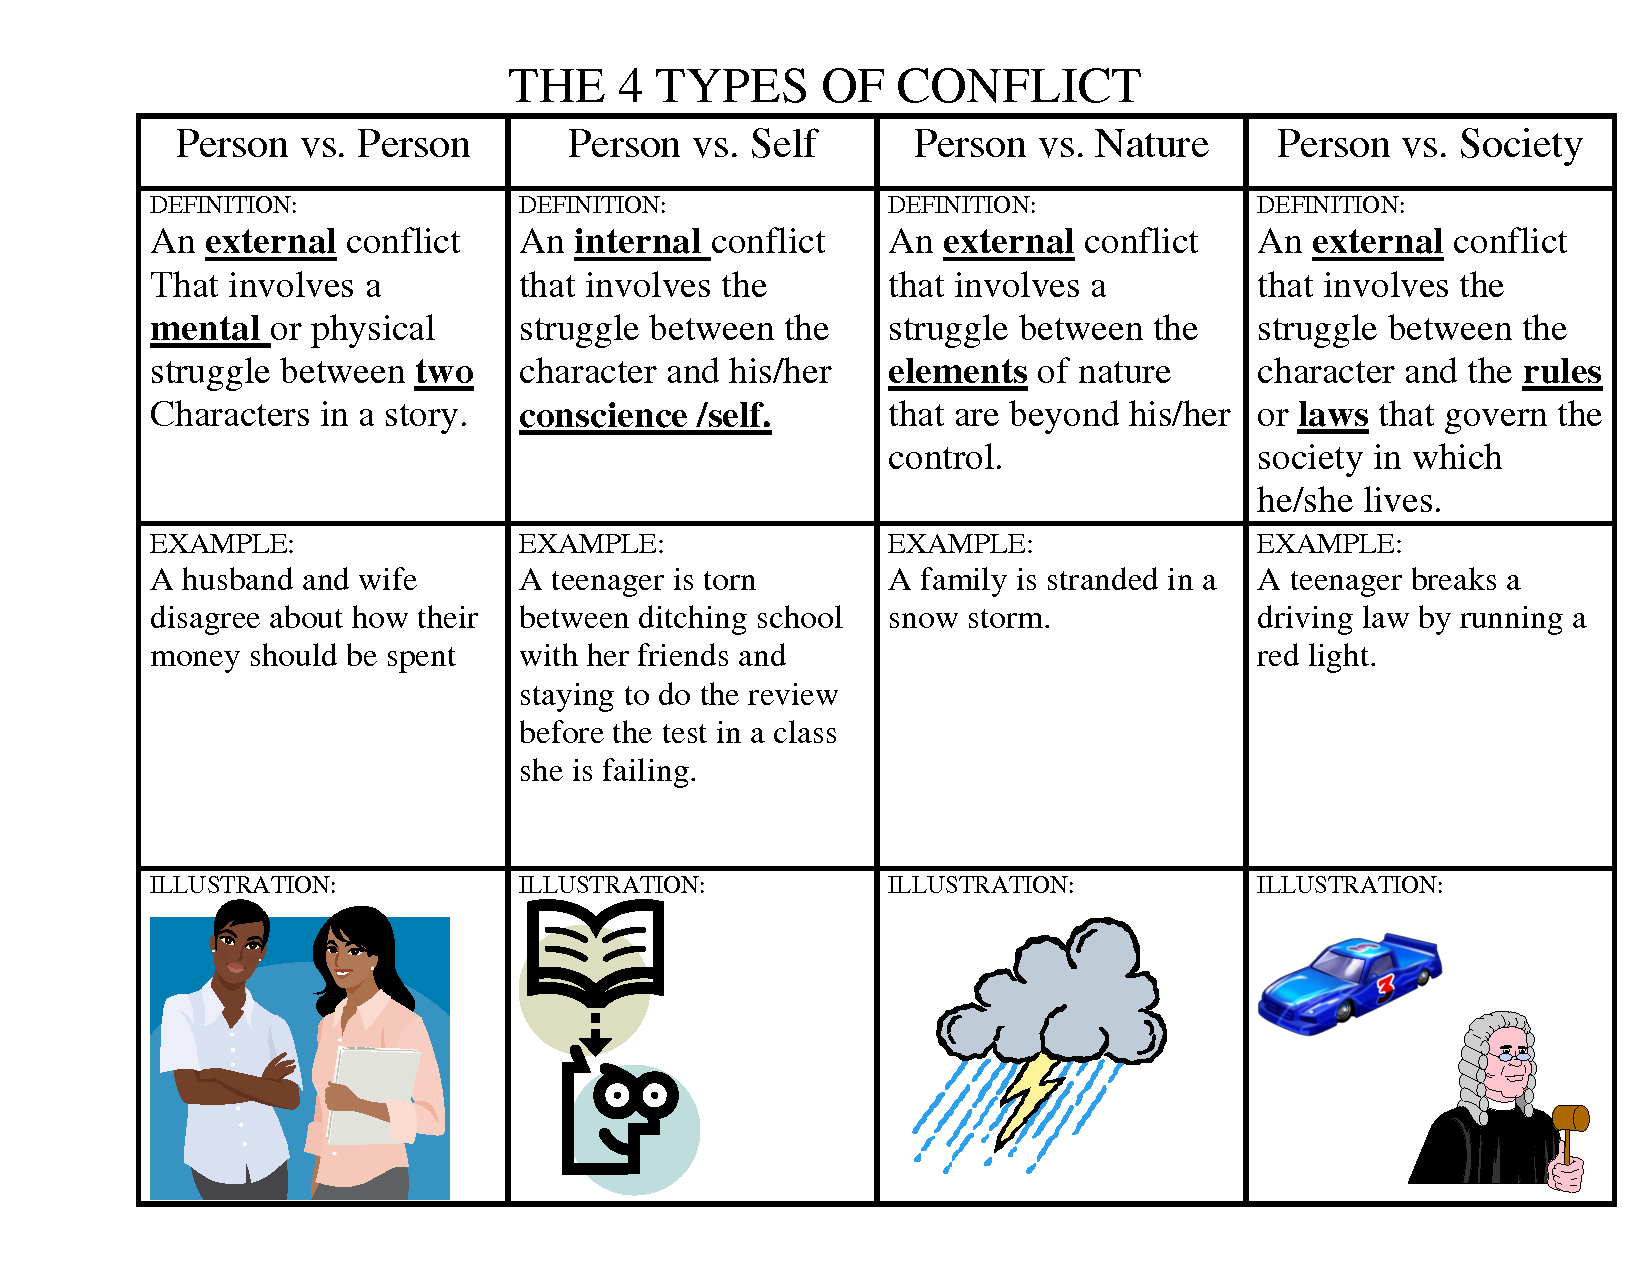 hight resolution of 2010 THE 4 TYPES OF CONFLICT GRAPHIC ORGANIZER   Types of conflict